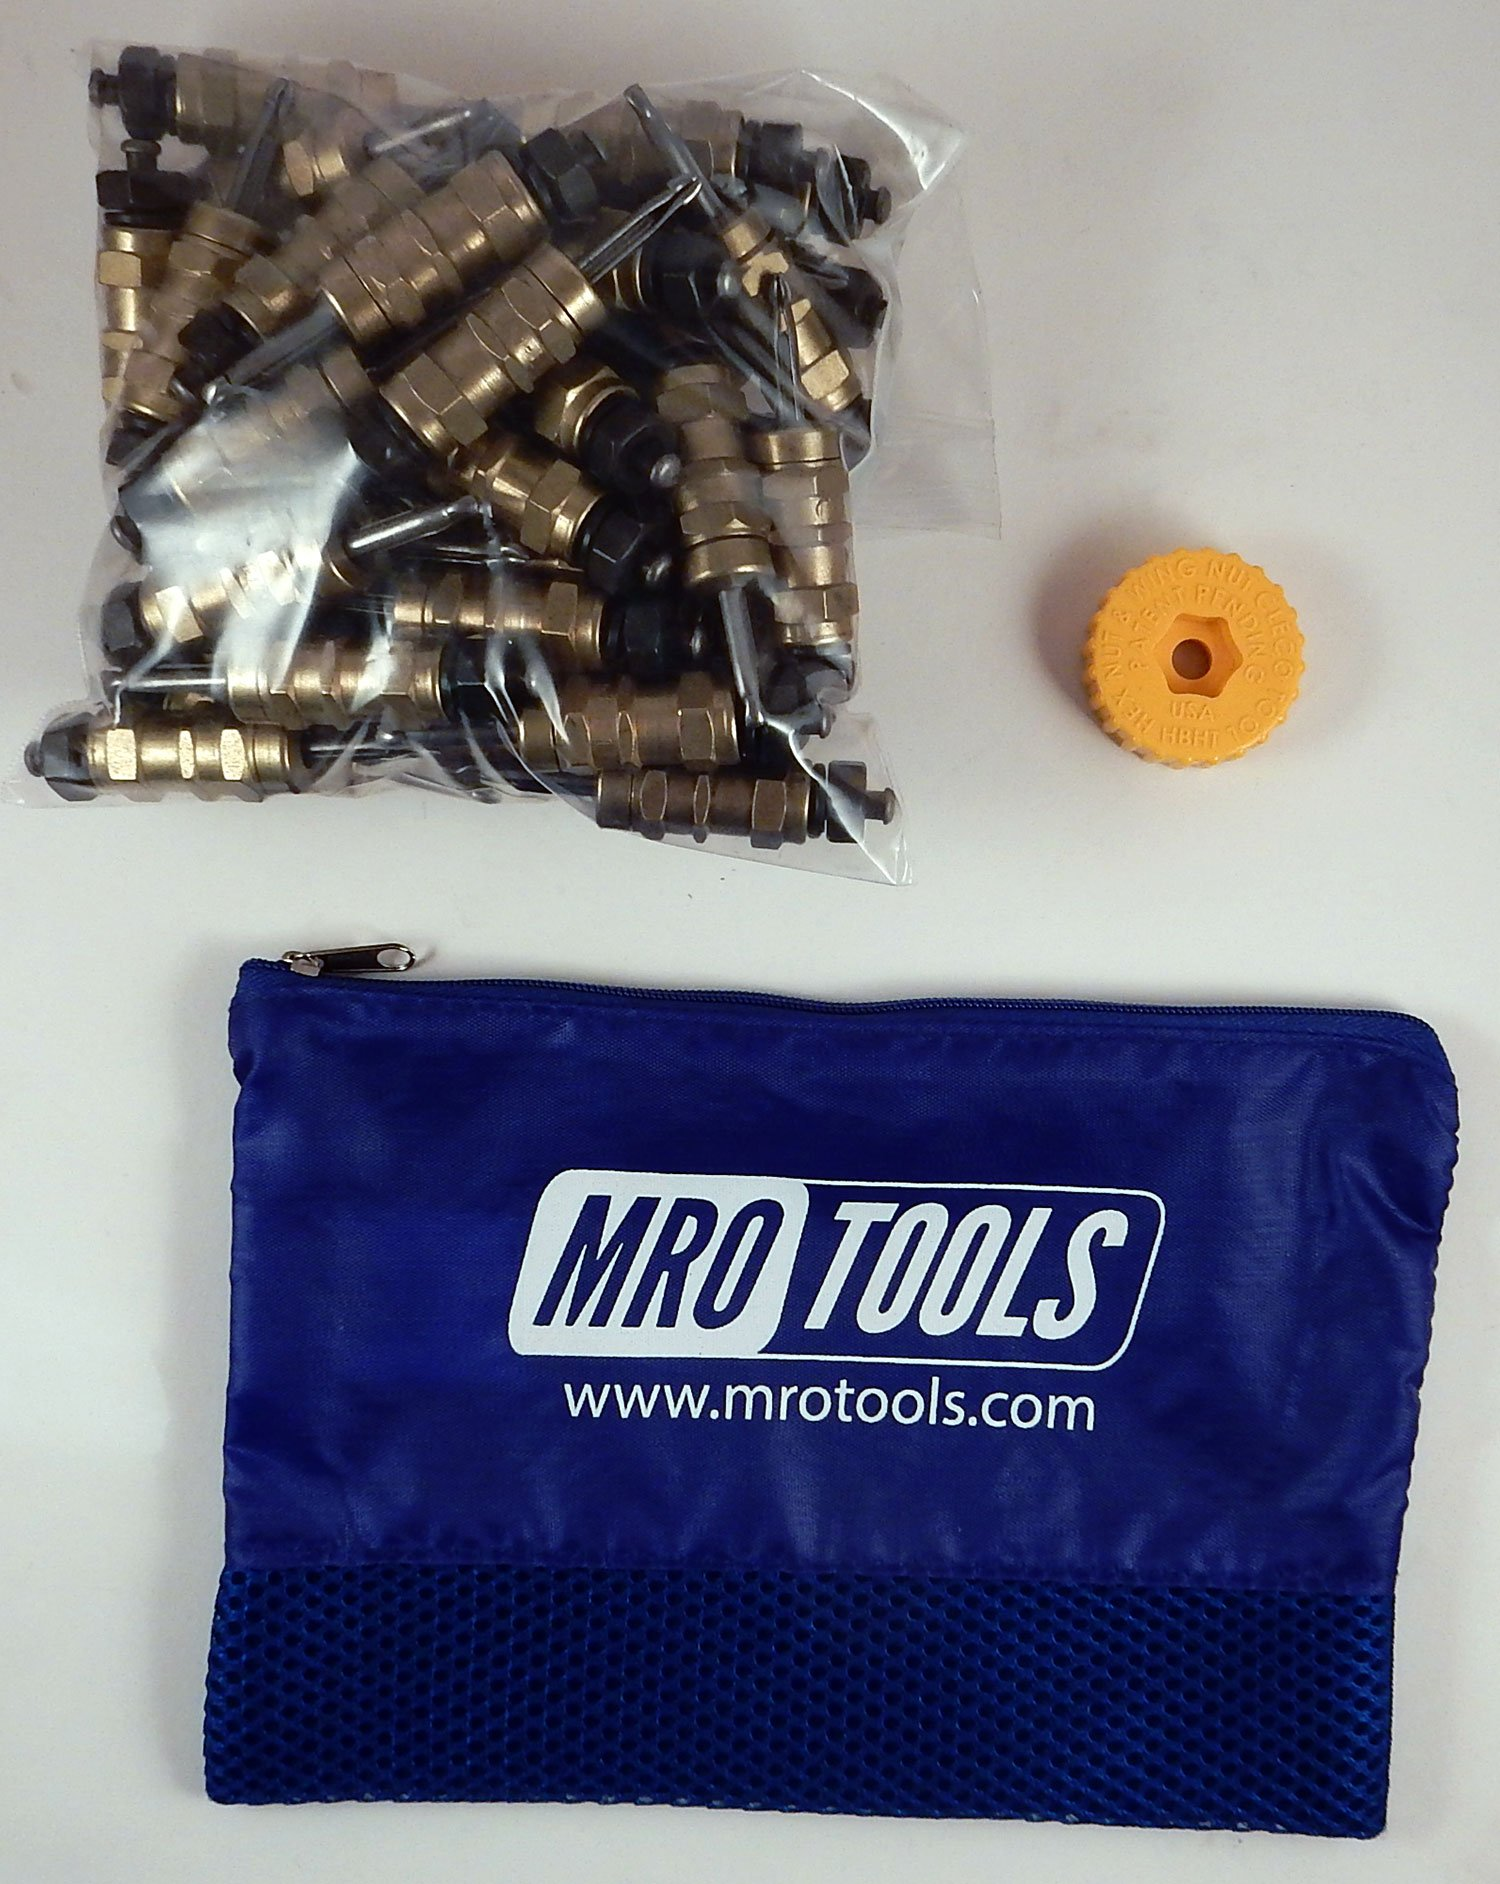 50 3/16 Standard Hex-Nut Cleco Fasteners w/ HBHT Tool & Carry Bag (KHN1S50-3/16)